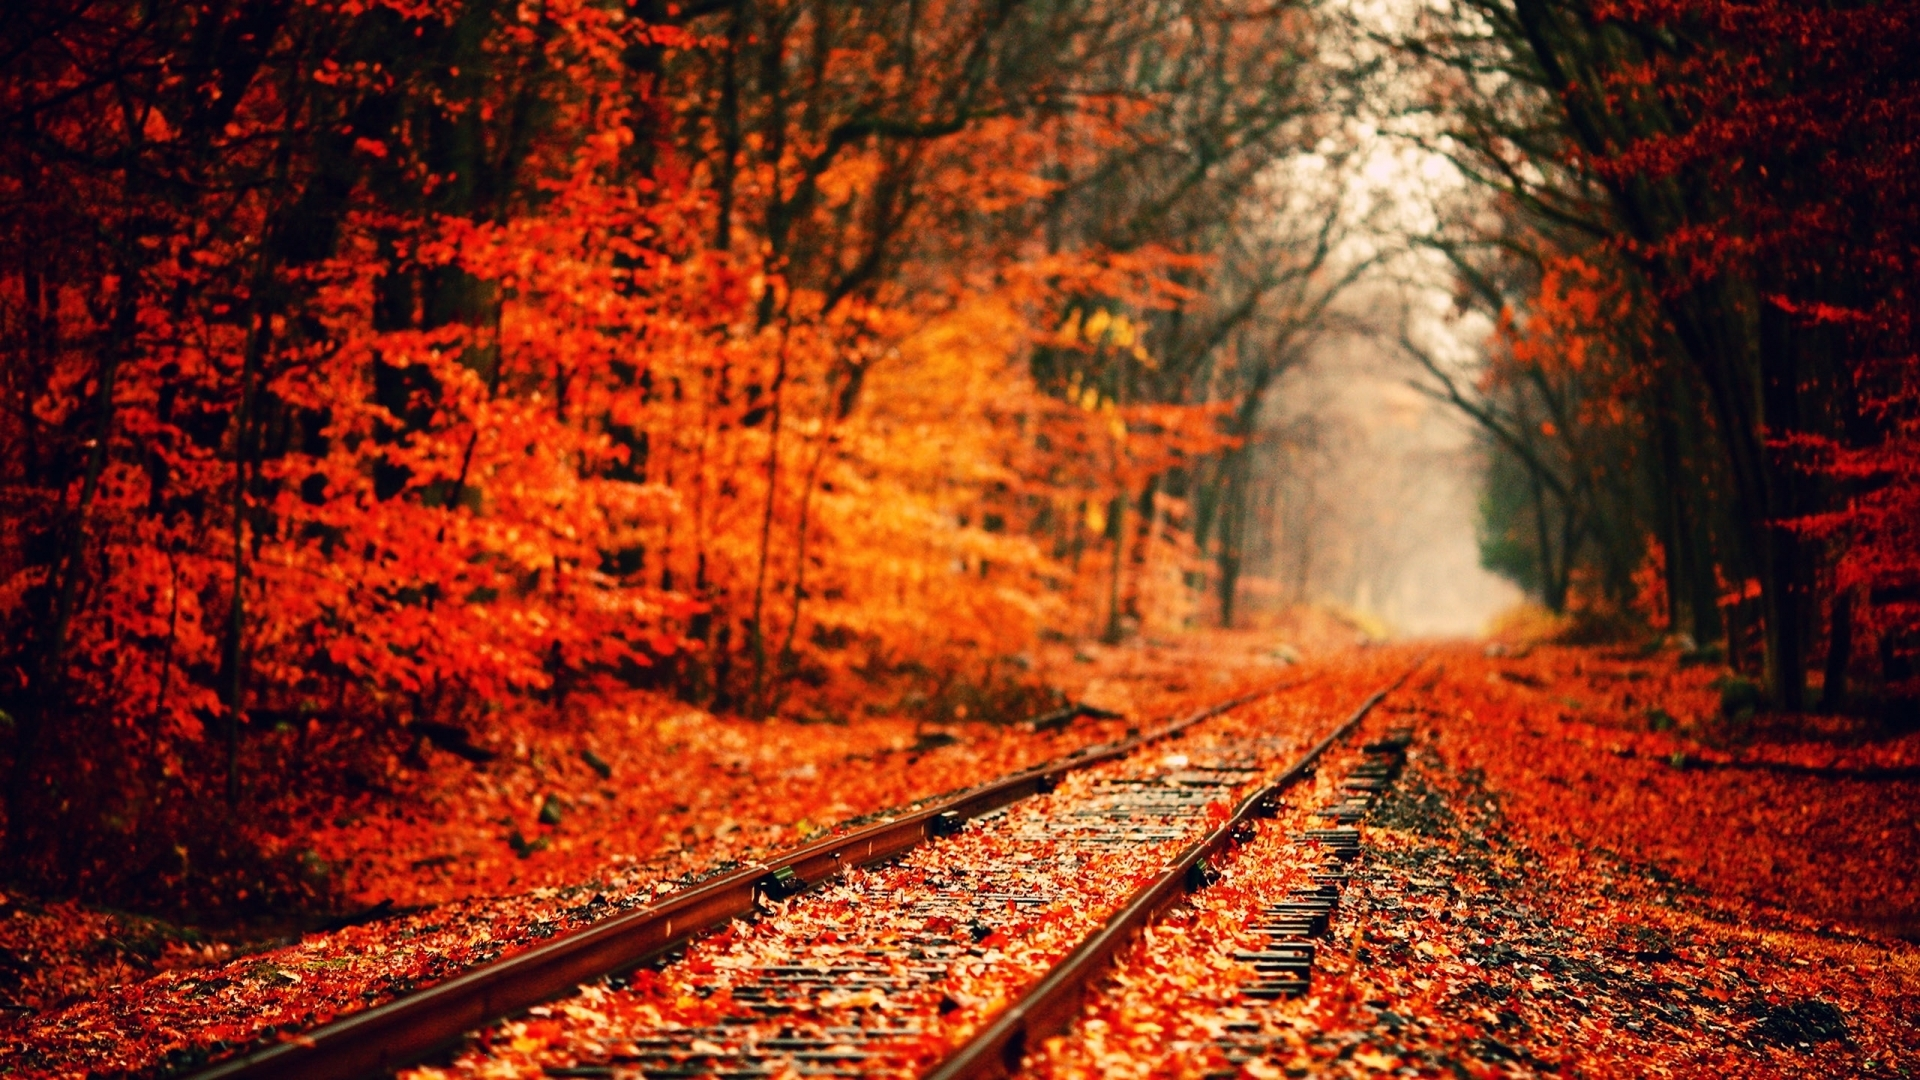 10 Latest Autumn Desktop Backgrounds Hd FULL HD 1080p For PC Desktop